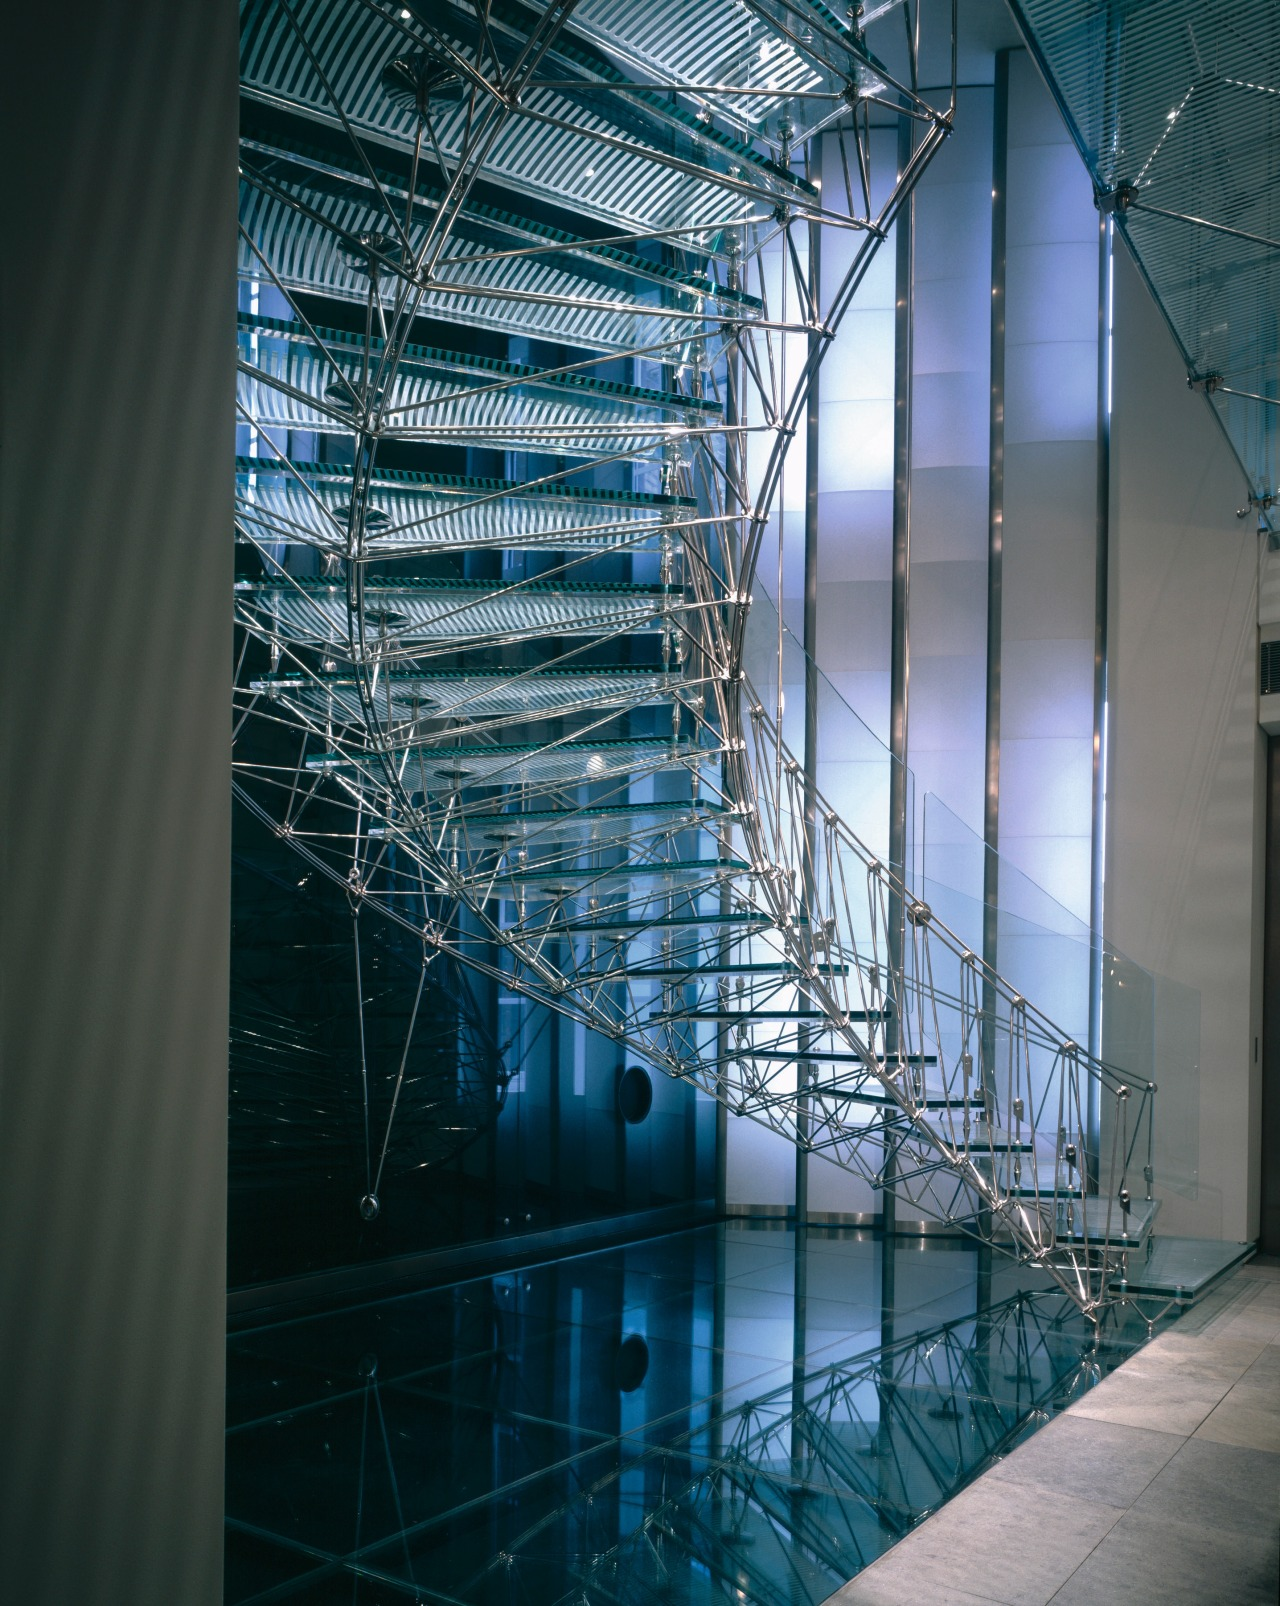 A view of the glass and metal stairway. architecture, building, daylighting, facade, glass, headquarters, line, metropolis, reflection, structure, teal, black